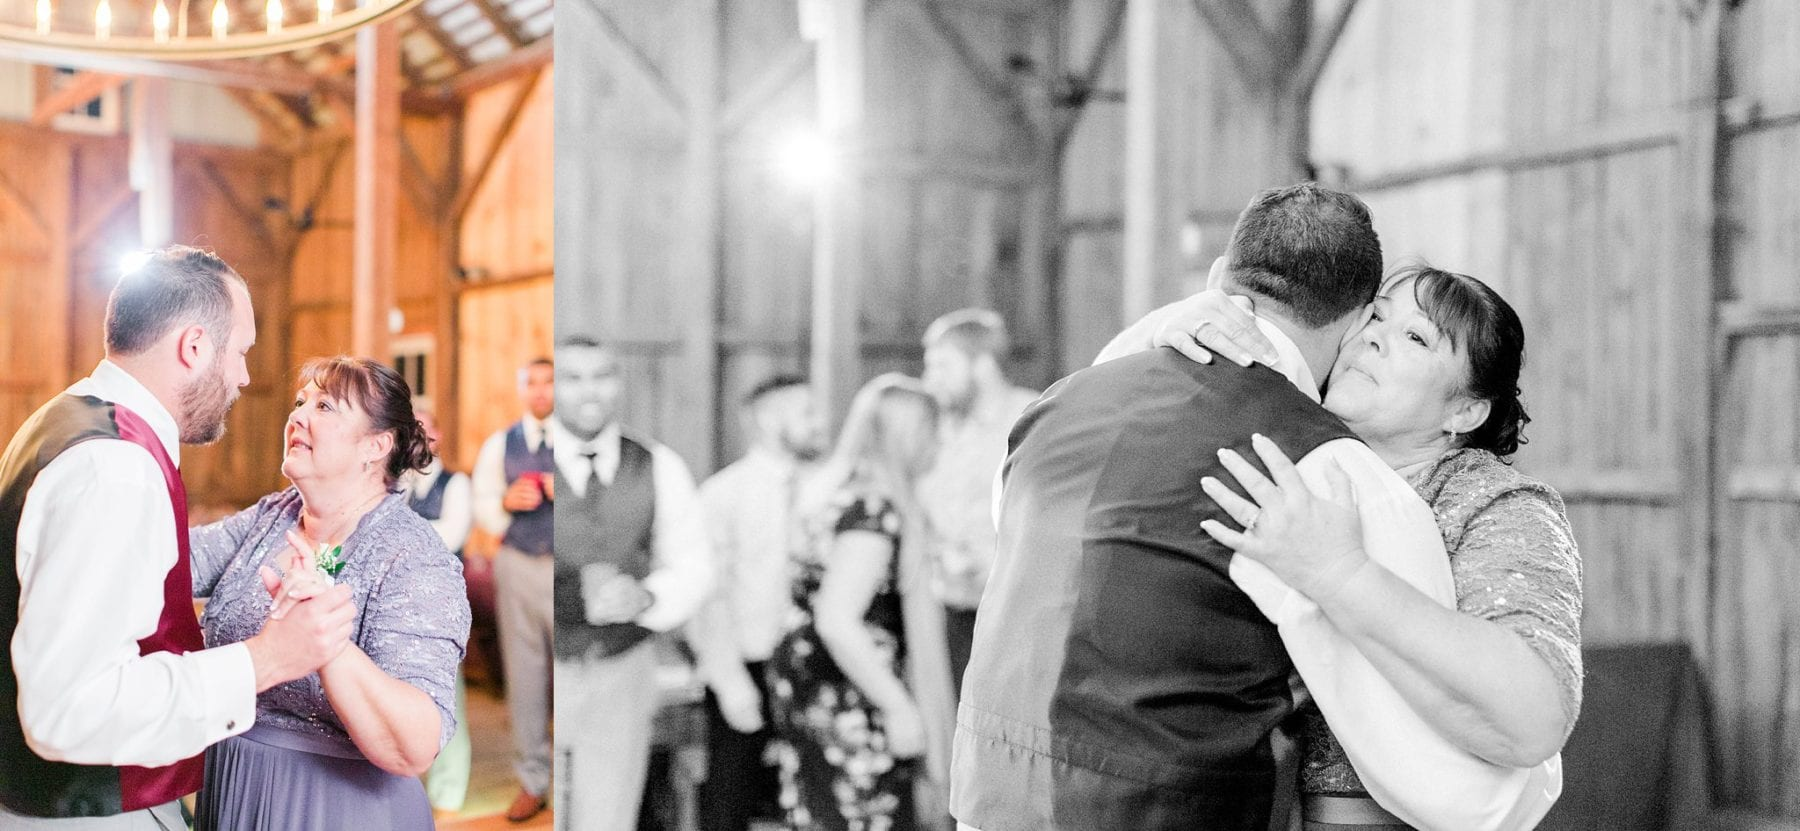 Tranquility Farm Wedding Photos Leesburg Wedding Photographer Megan Kelsey Photography Virginia Wedding Photographer Matt & Colleen-192.jpg